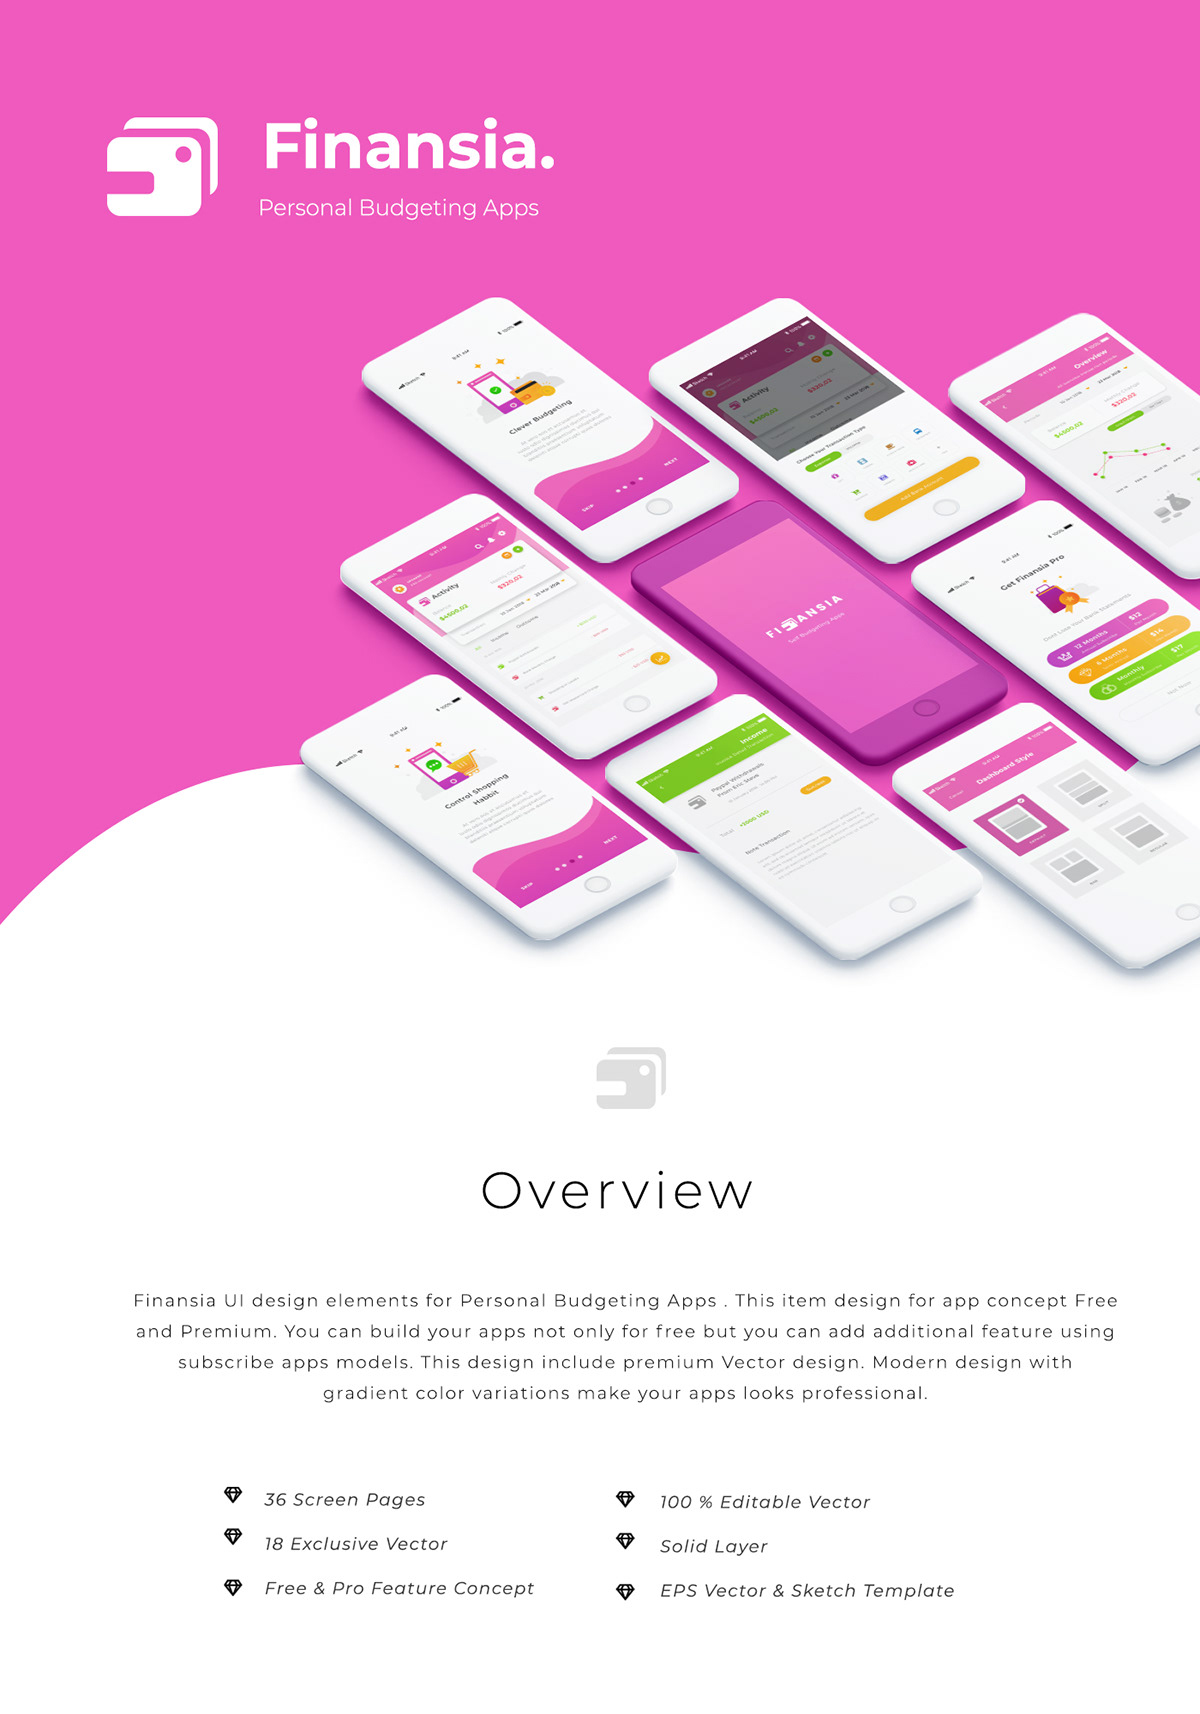 finansia personal budgeting apps ui kits on pantone canvas gallery